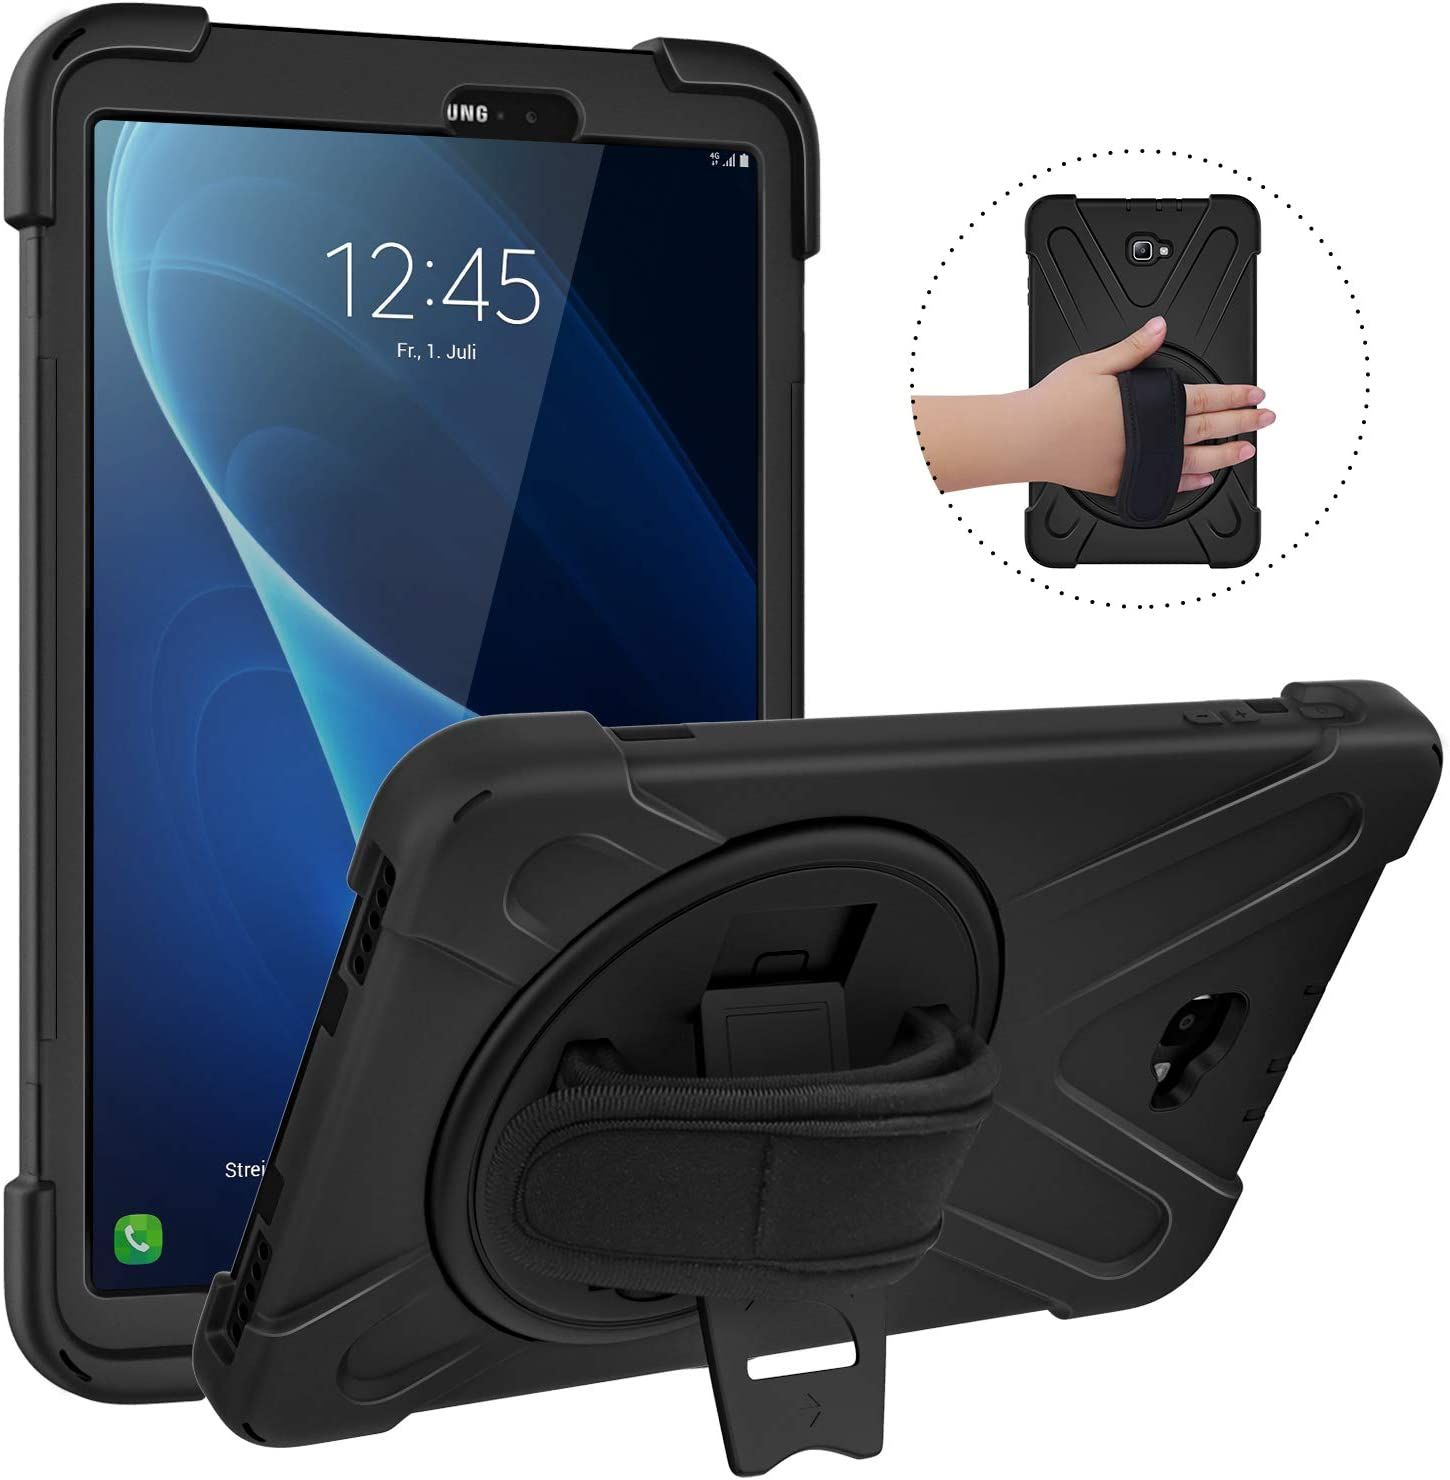 """MoKo Case Fit Samsung Galaxy Tab A 10.1 2016, [Heavy Duty] Shockproof Full-Body Hybrid Rugged 360 Degree Rotating Stand Cover for Galaxy Tab A 10.1"""" Tablet (No S Pen Version SM-T580/T585) - Black"""